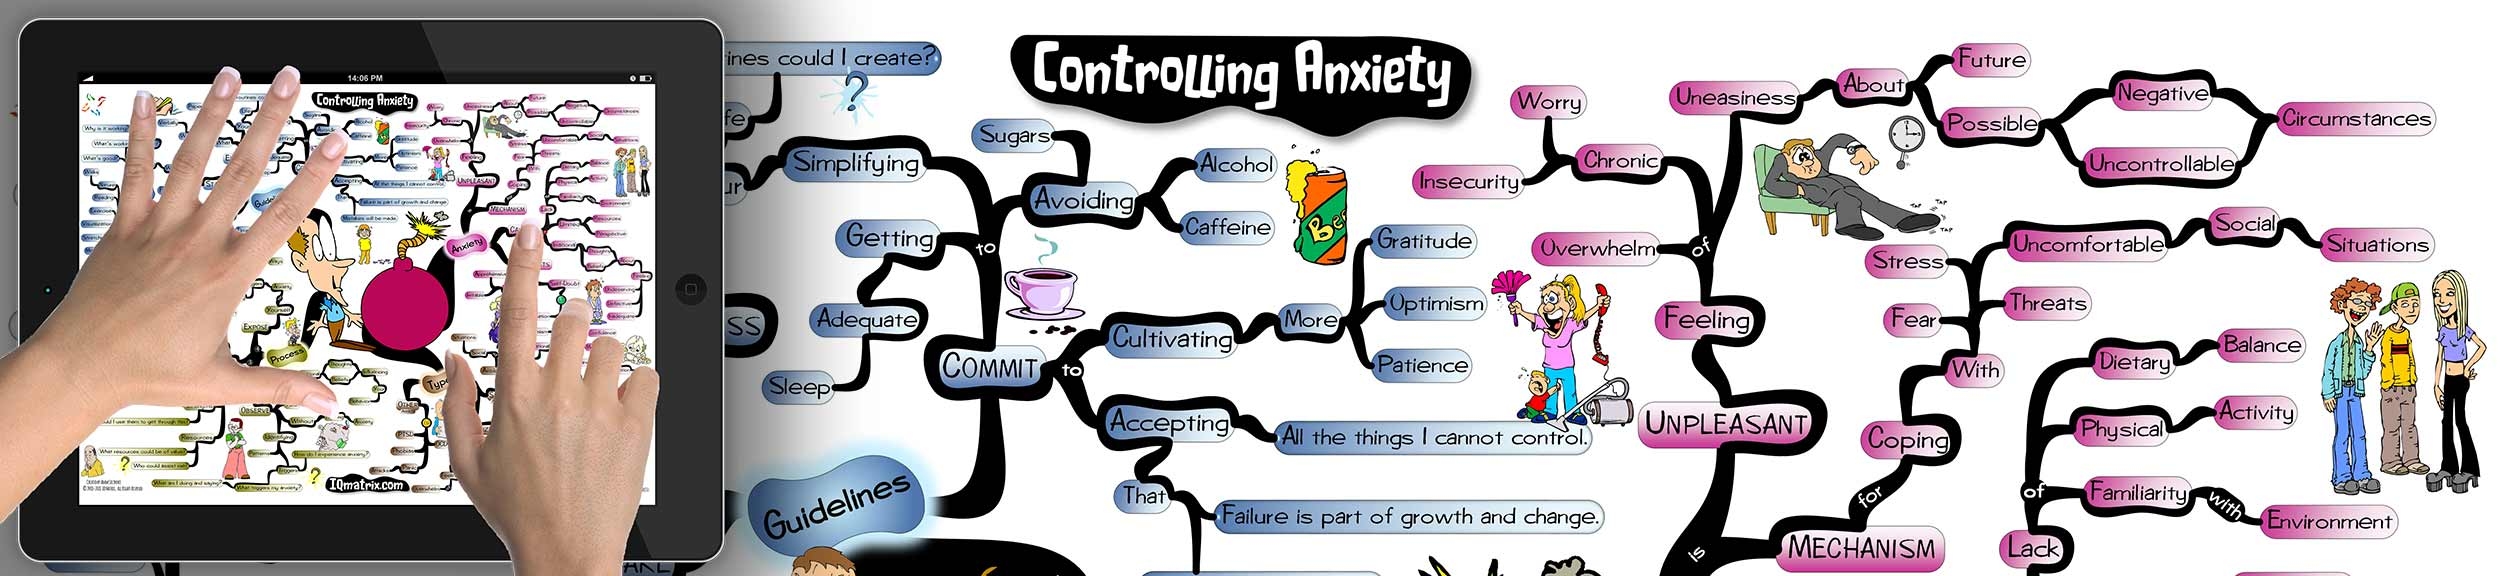 How to control your anxiety and progressively start calming your mind fandeluxe Choice Image